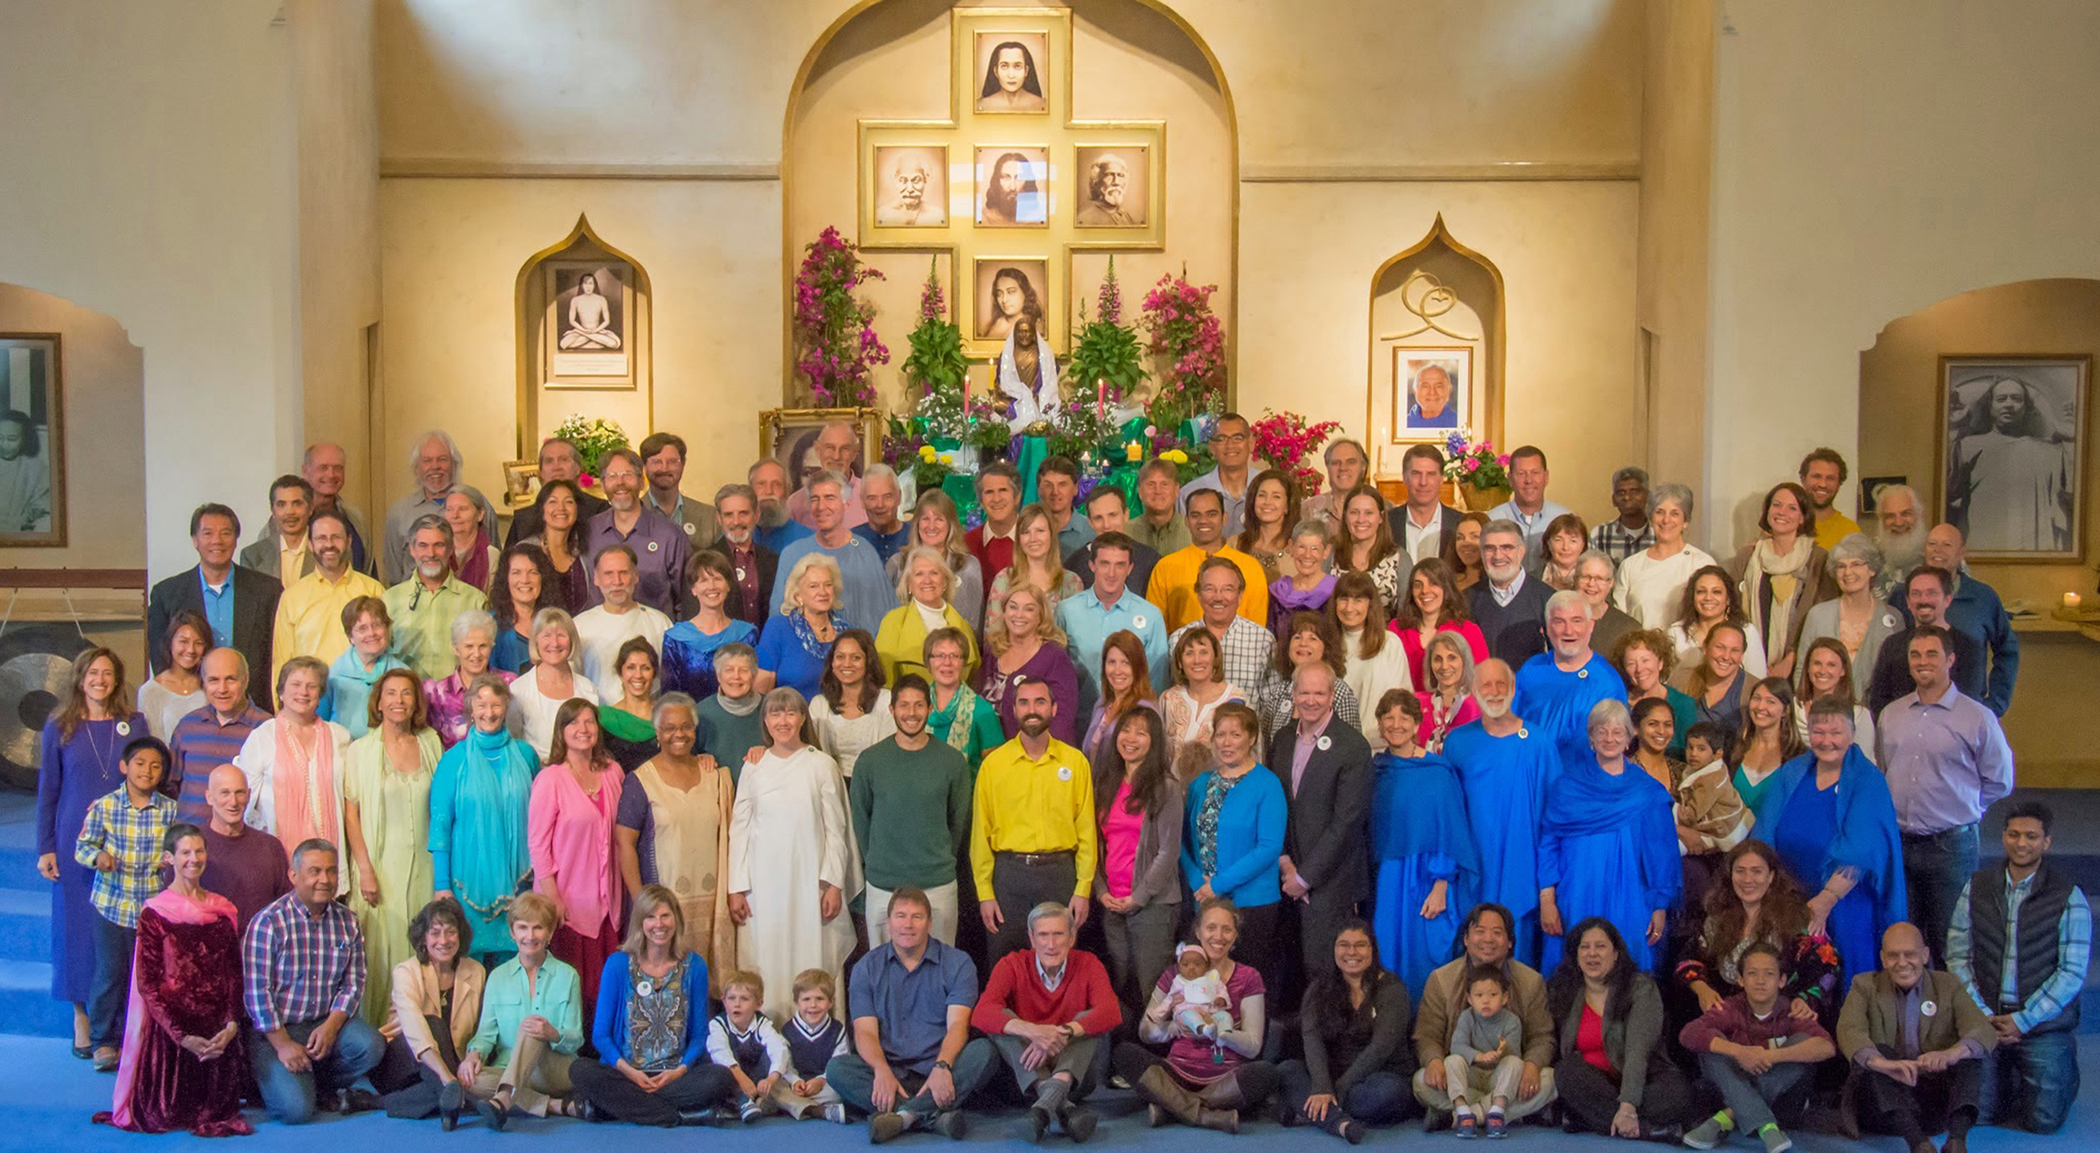 Ananda Palo Alto congregation after a recent Easter celebration